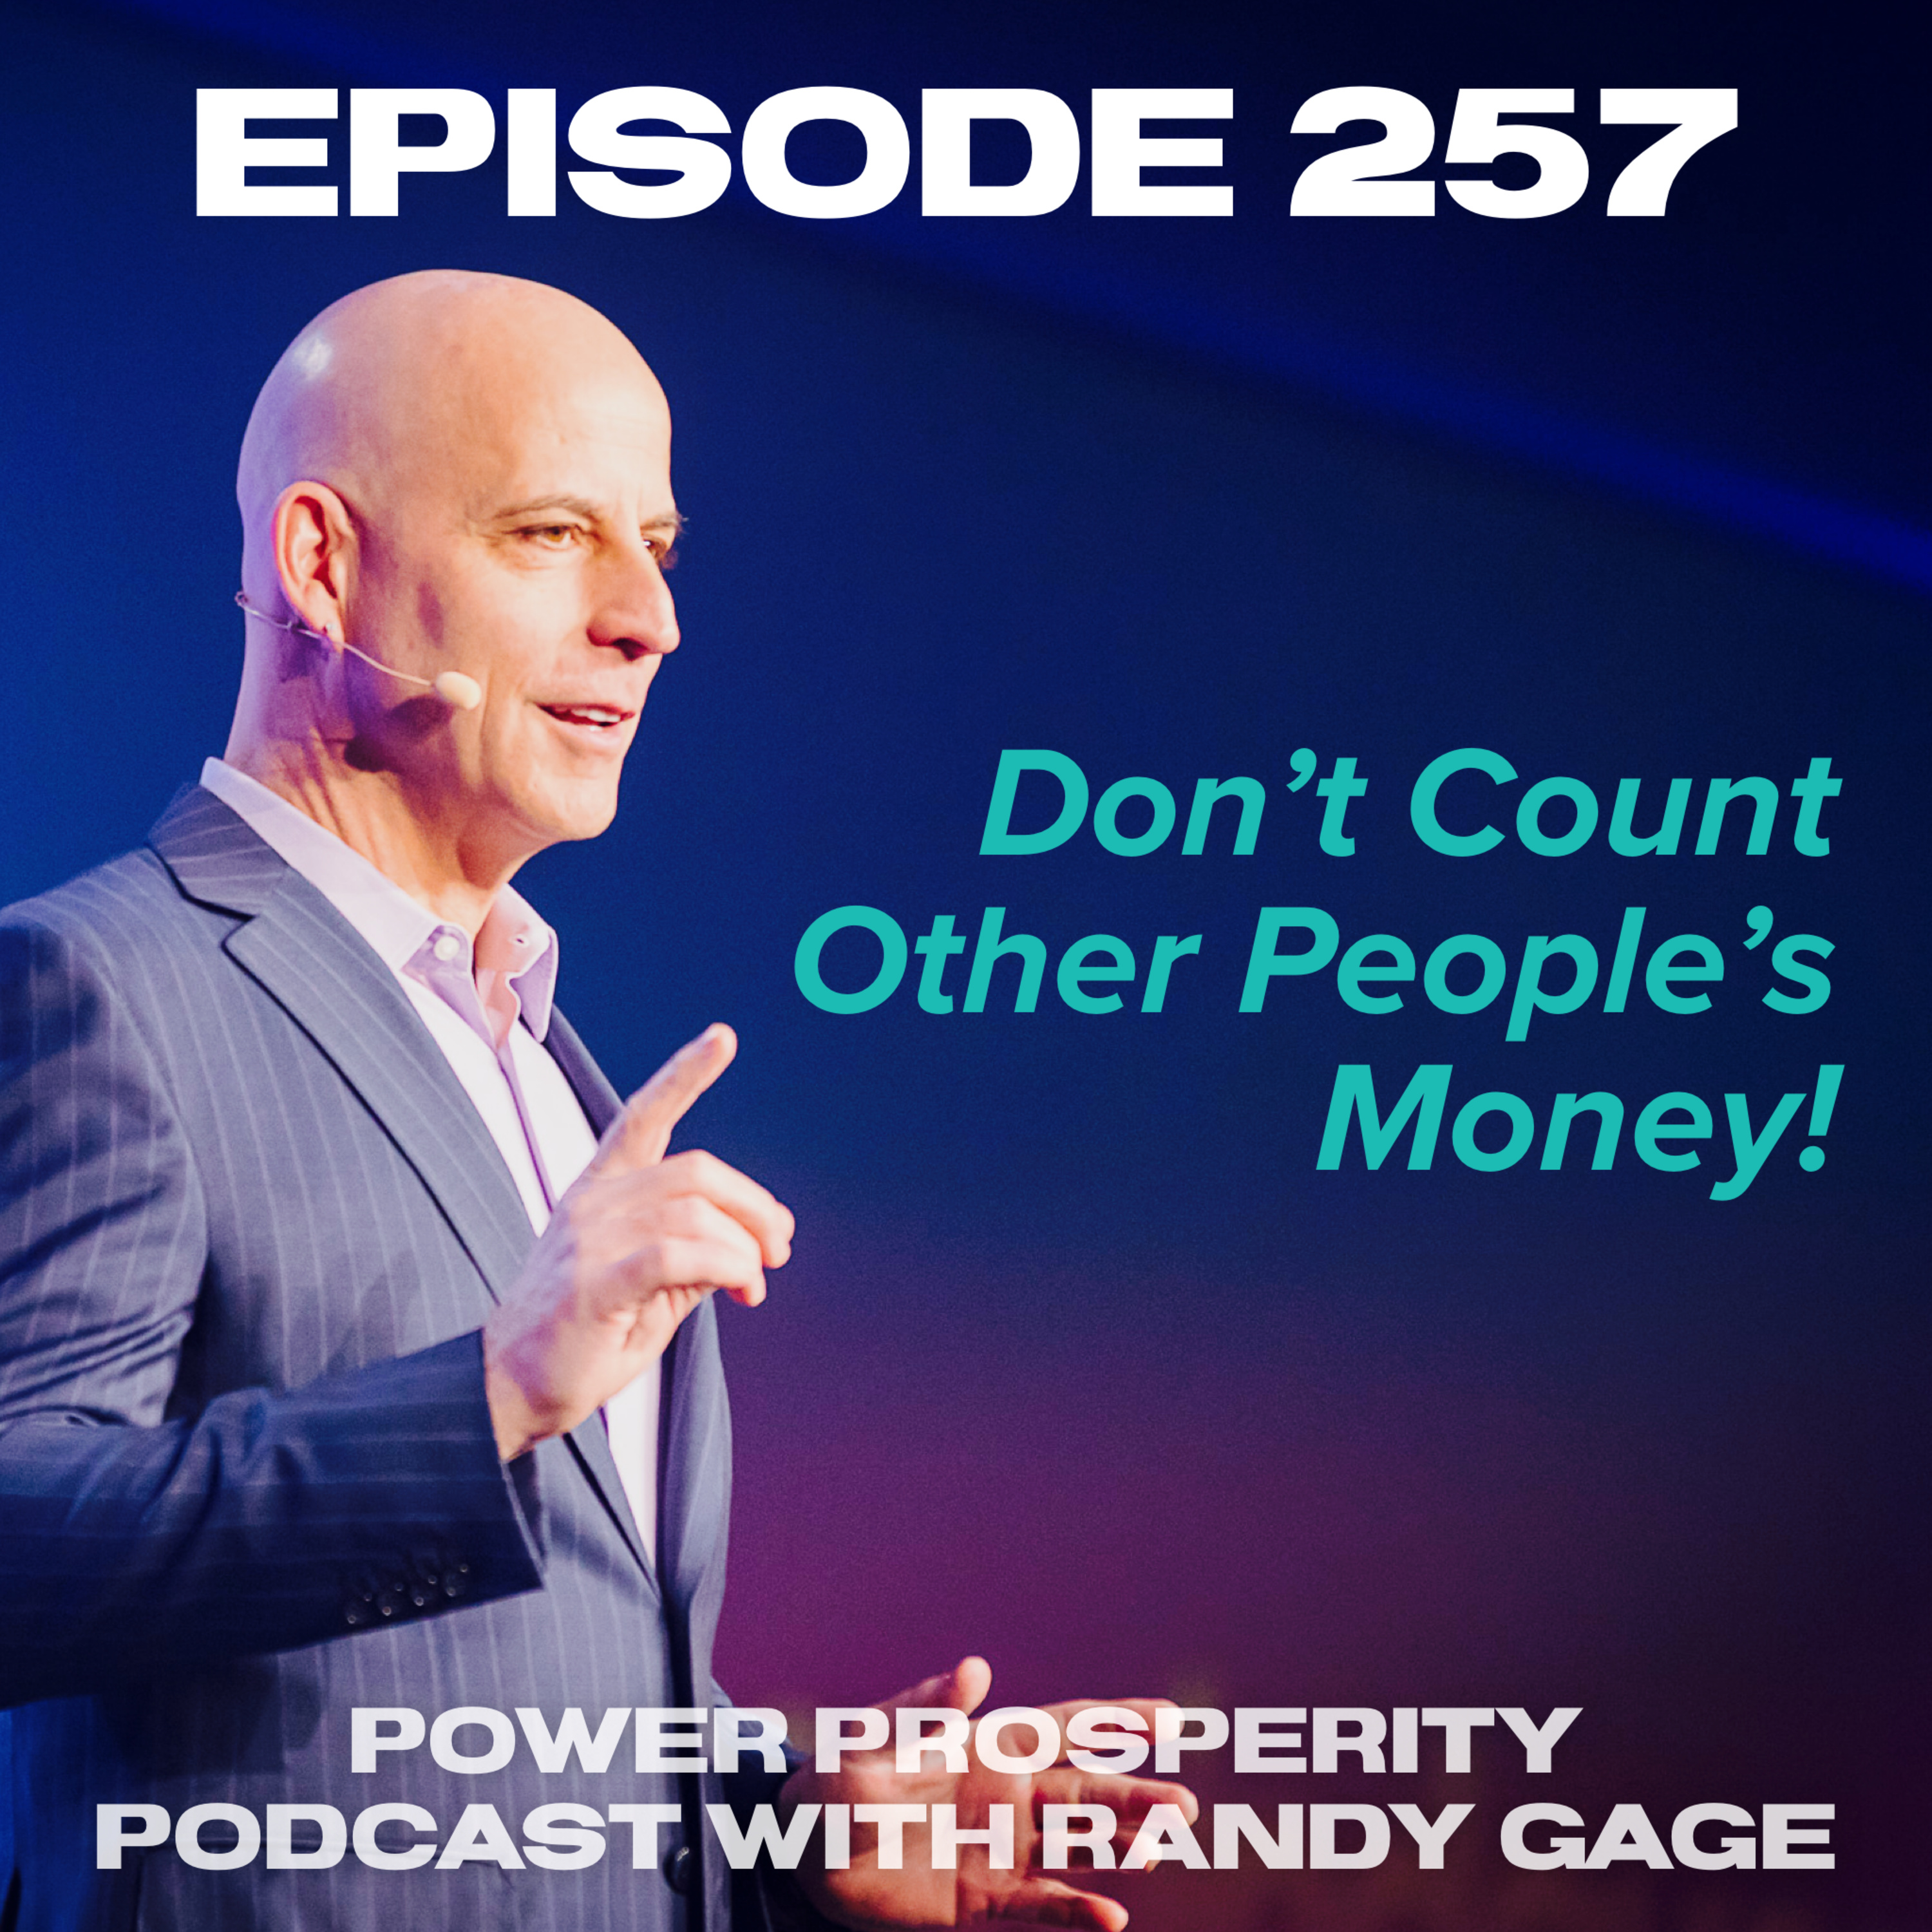 Episode 257: Don't Count Other People's Money!